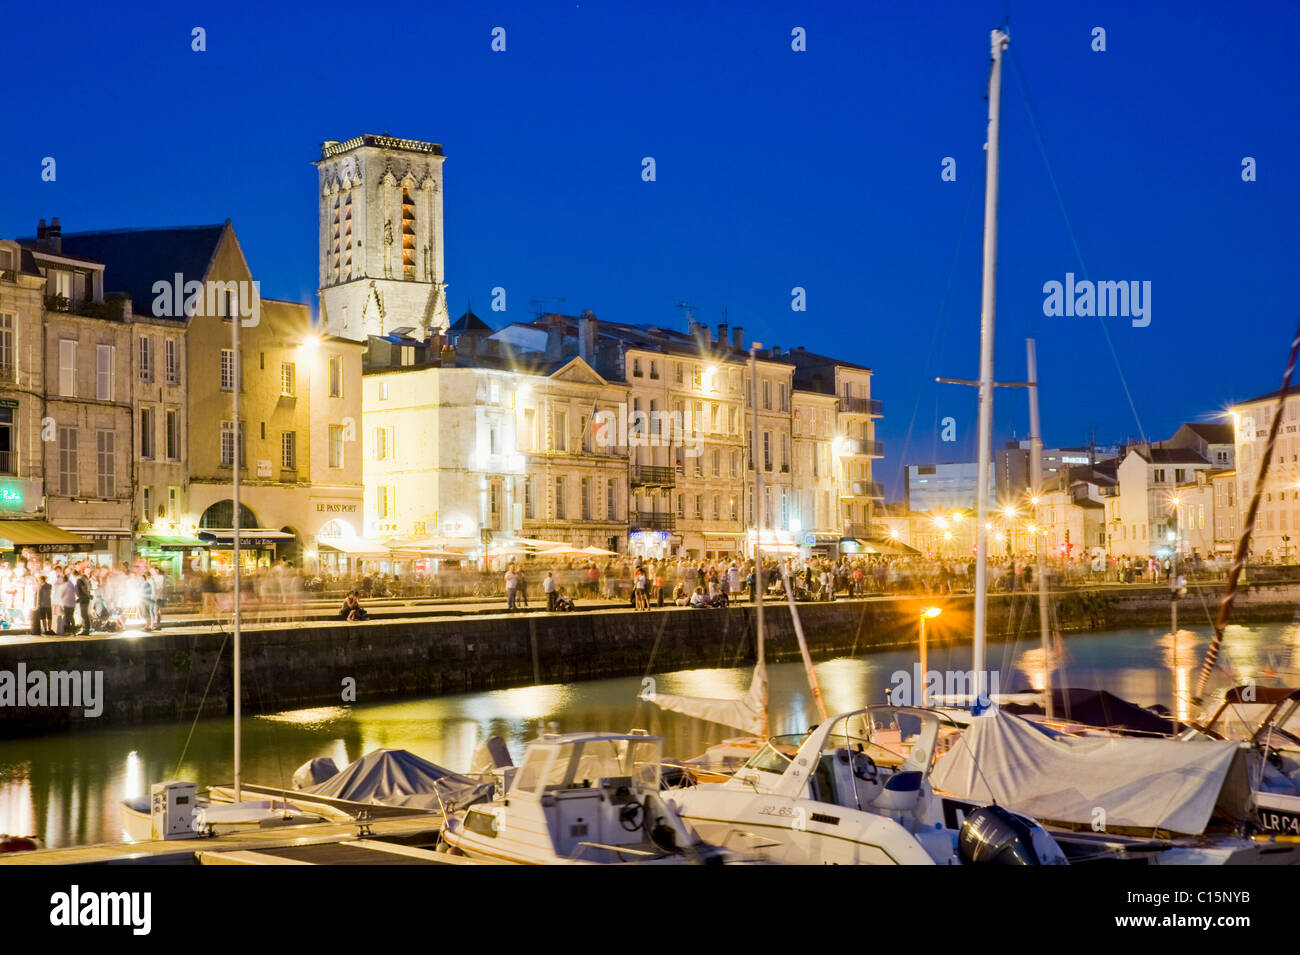 The old harbour, La Rochelle, Charente-Maritime, France - Stock Image